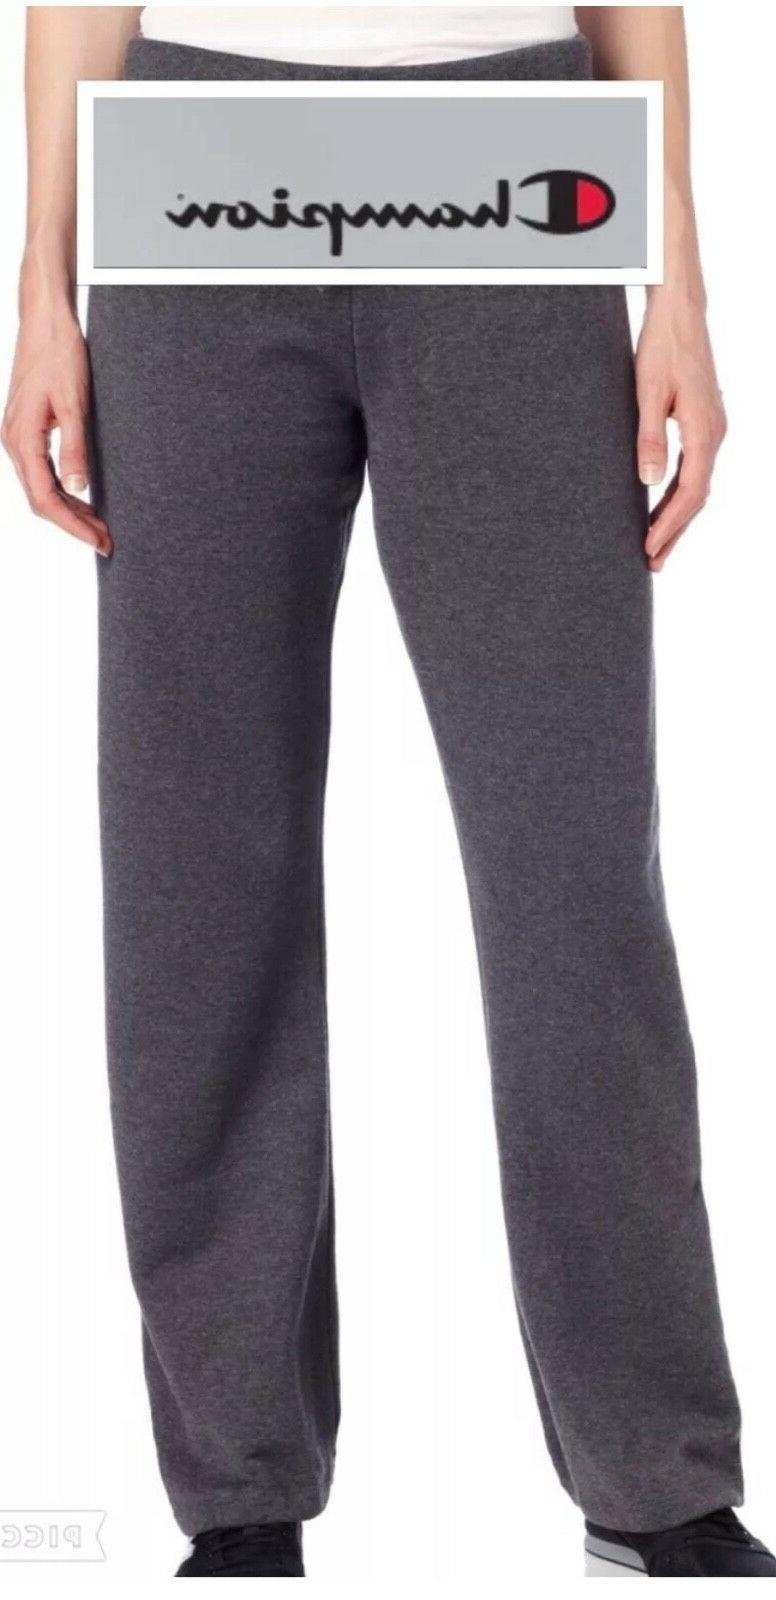 nwt ladies powertrain tracksuit pants trac bottoms